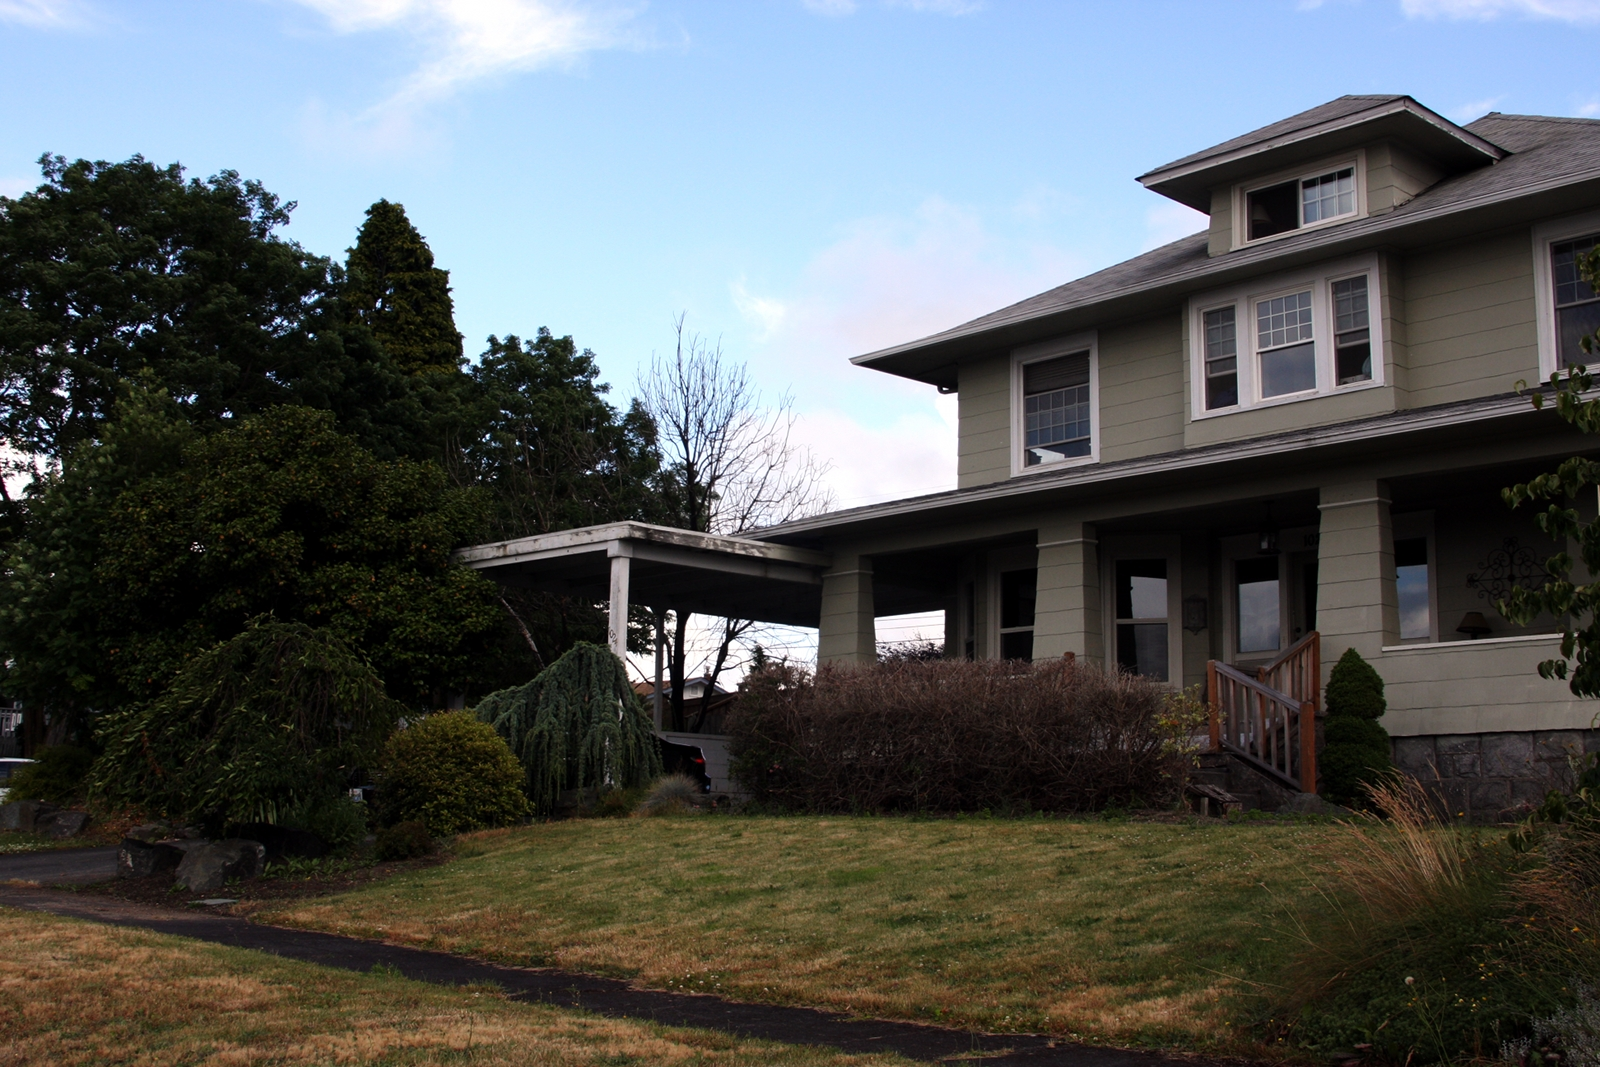 Many of the houses were constructed between the 1890s and the 1920s, with styles ranging from Victorian to Craftsman.